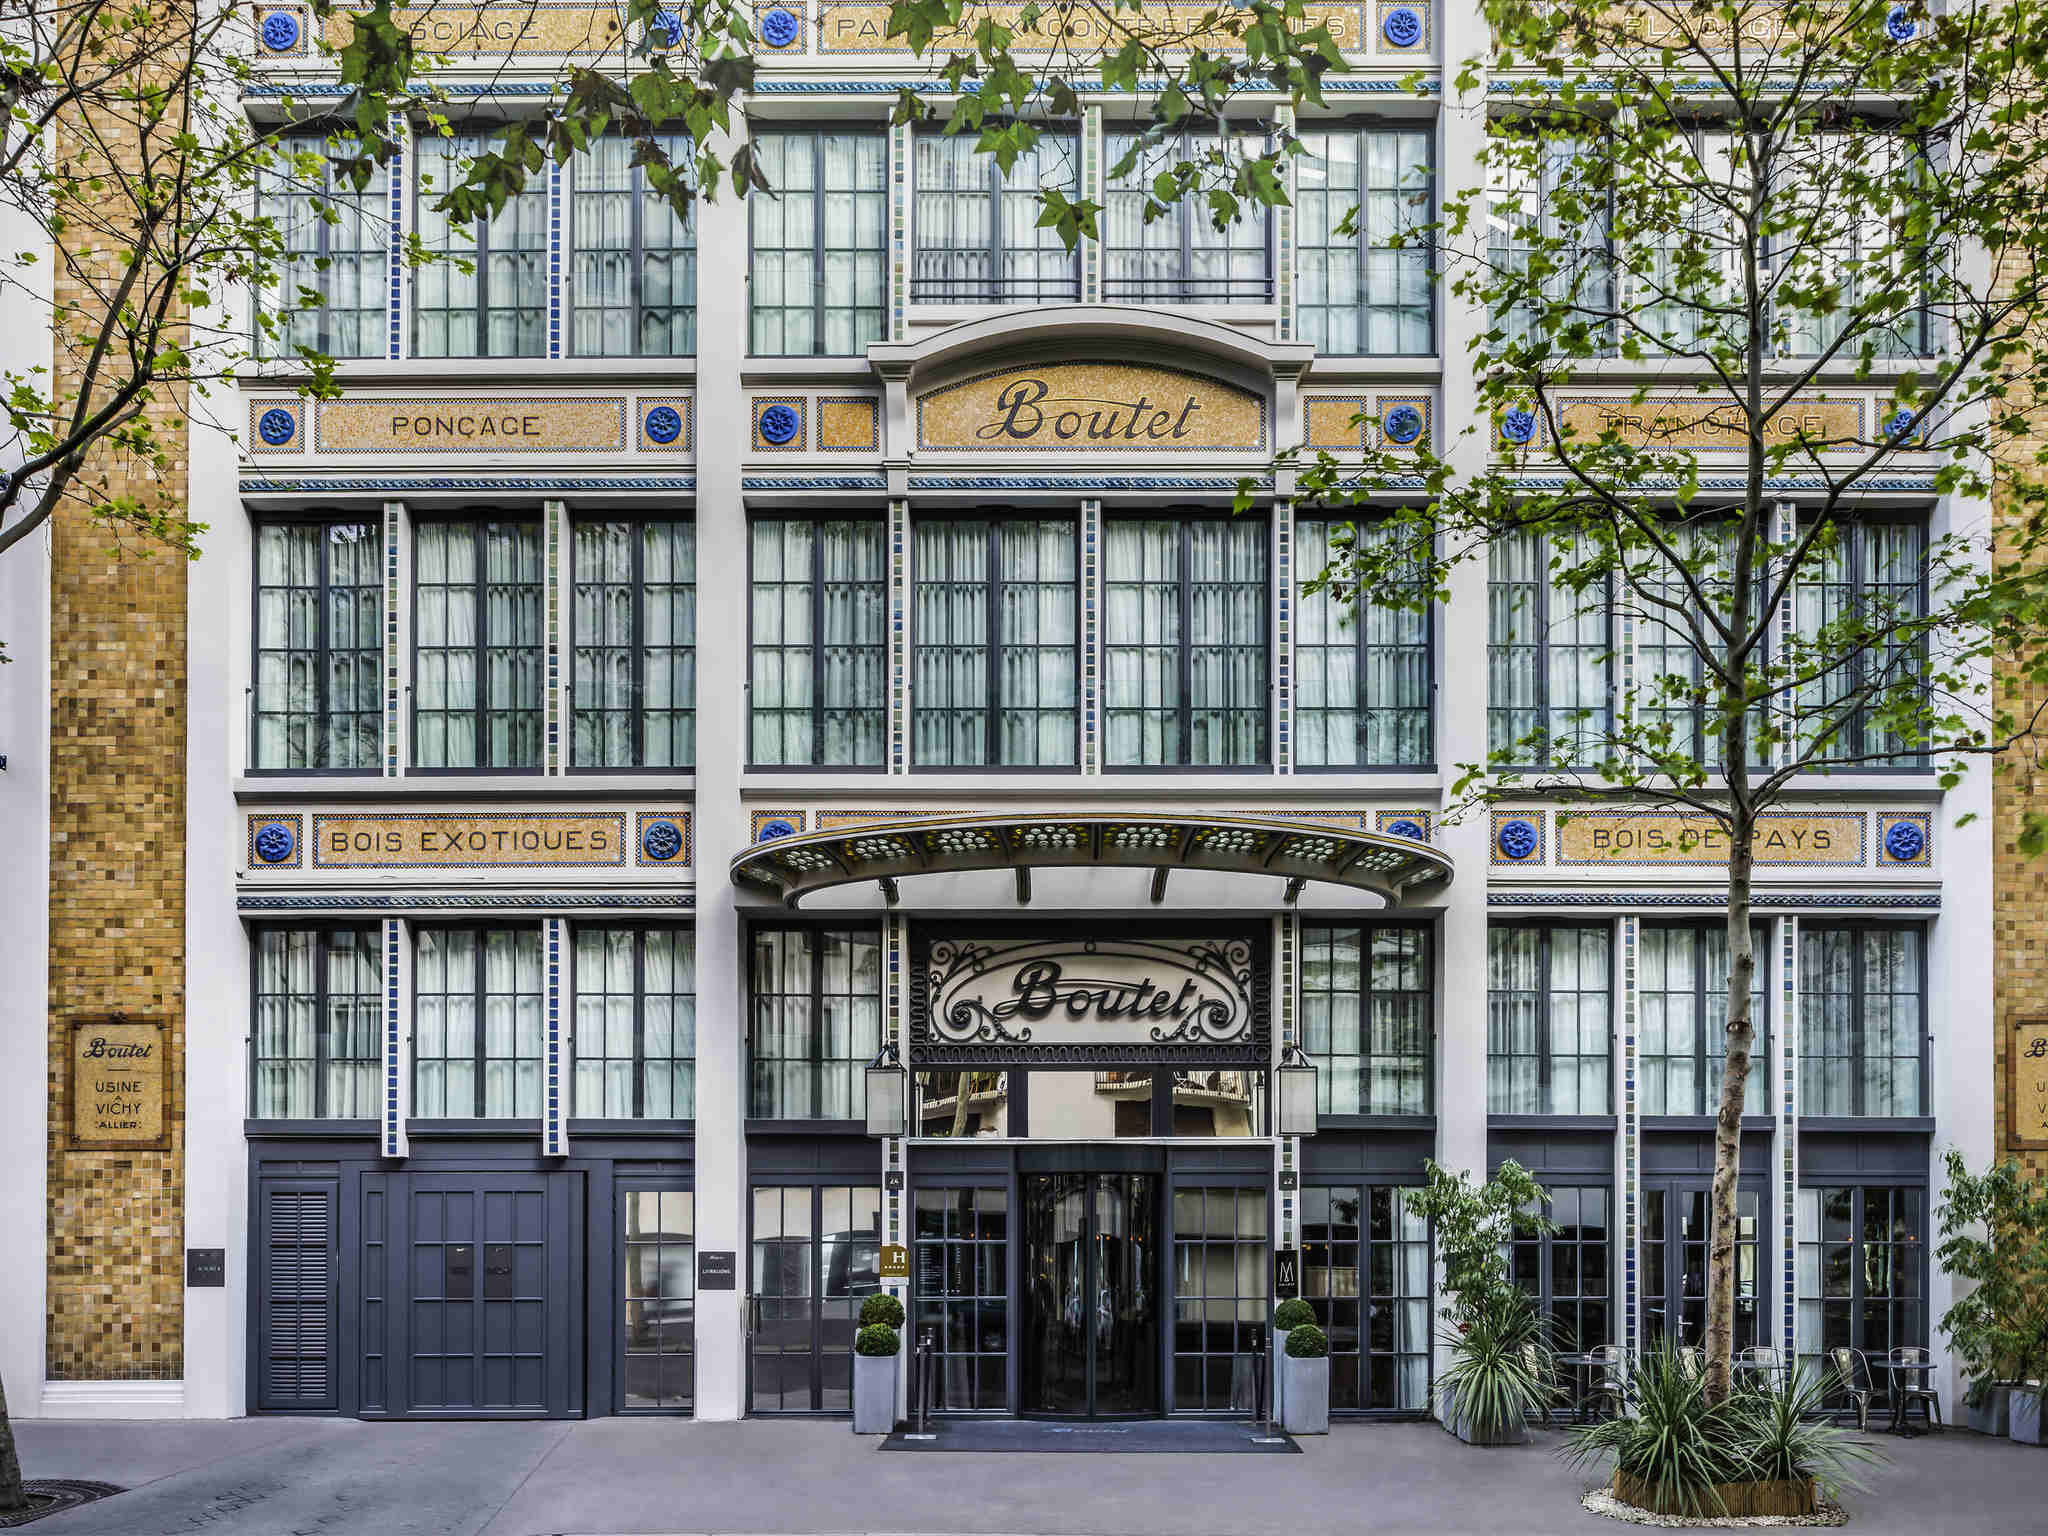 Hotel - Hotel Paris Bastille Boutet - MGallery by Sofitel